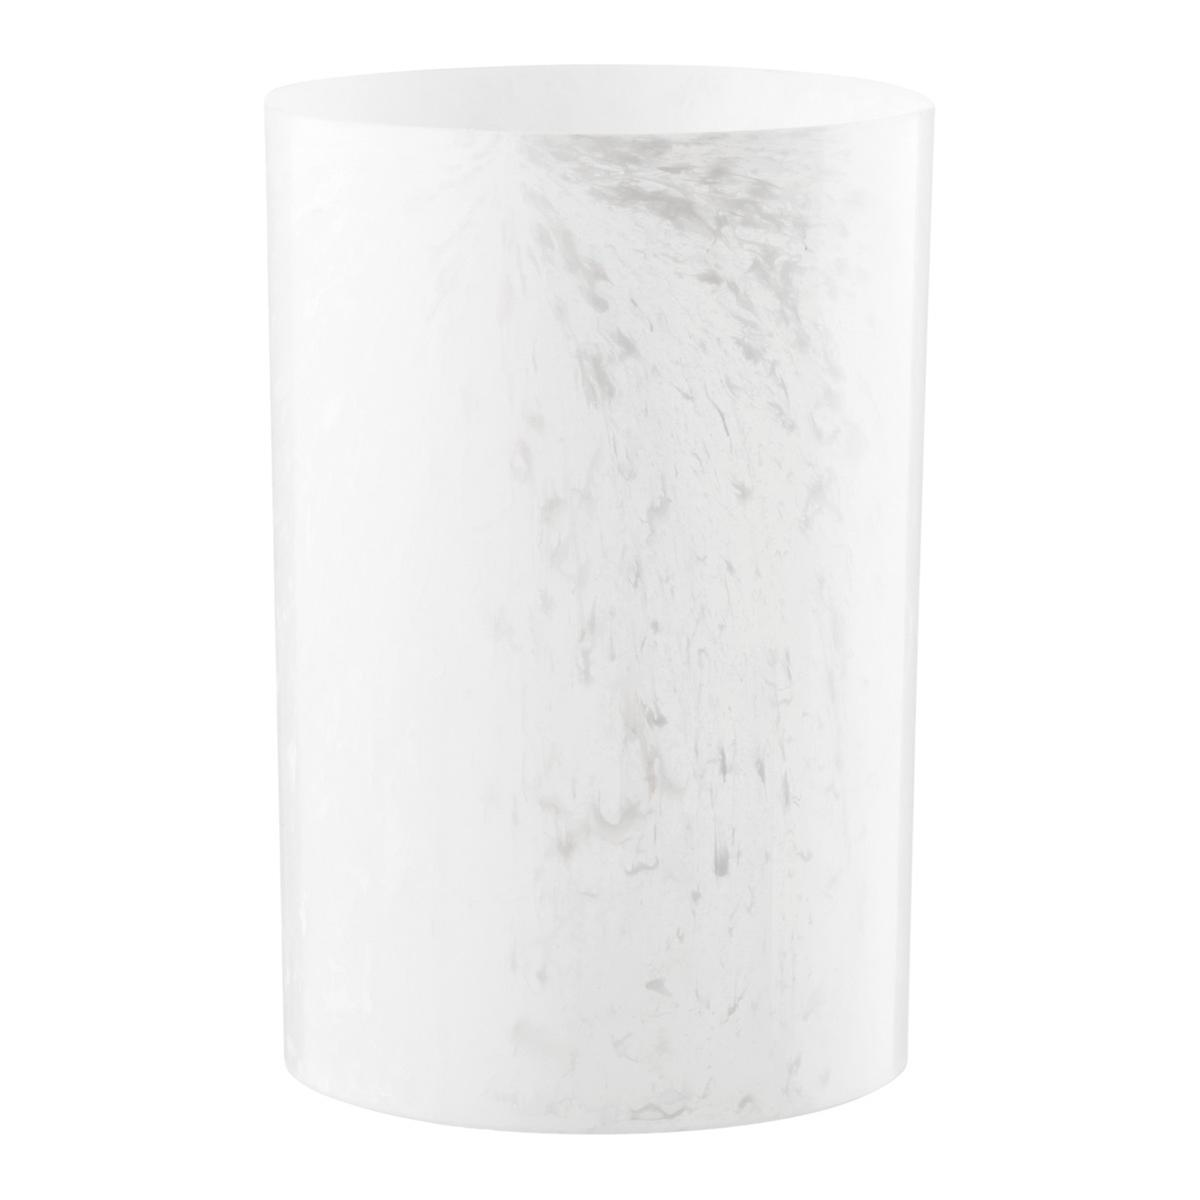 Umbra White Onyx Colonnade Wastebasket